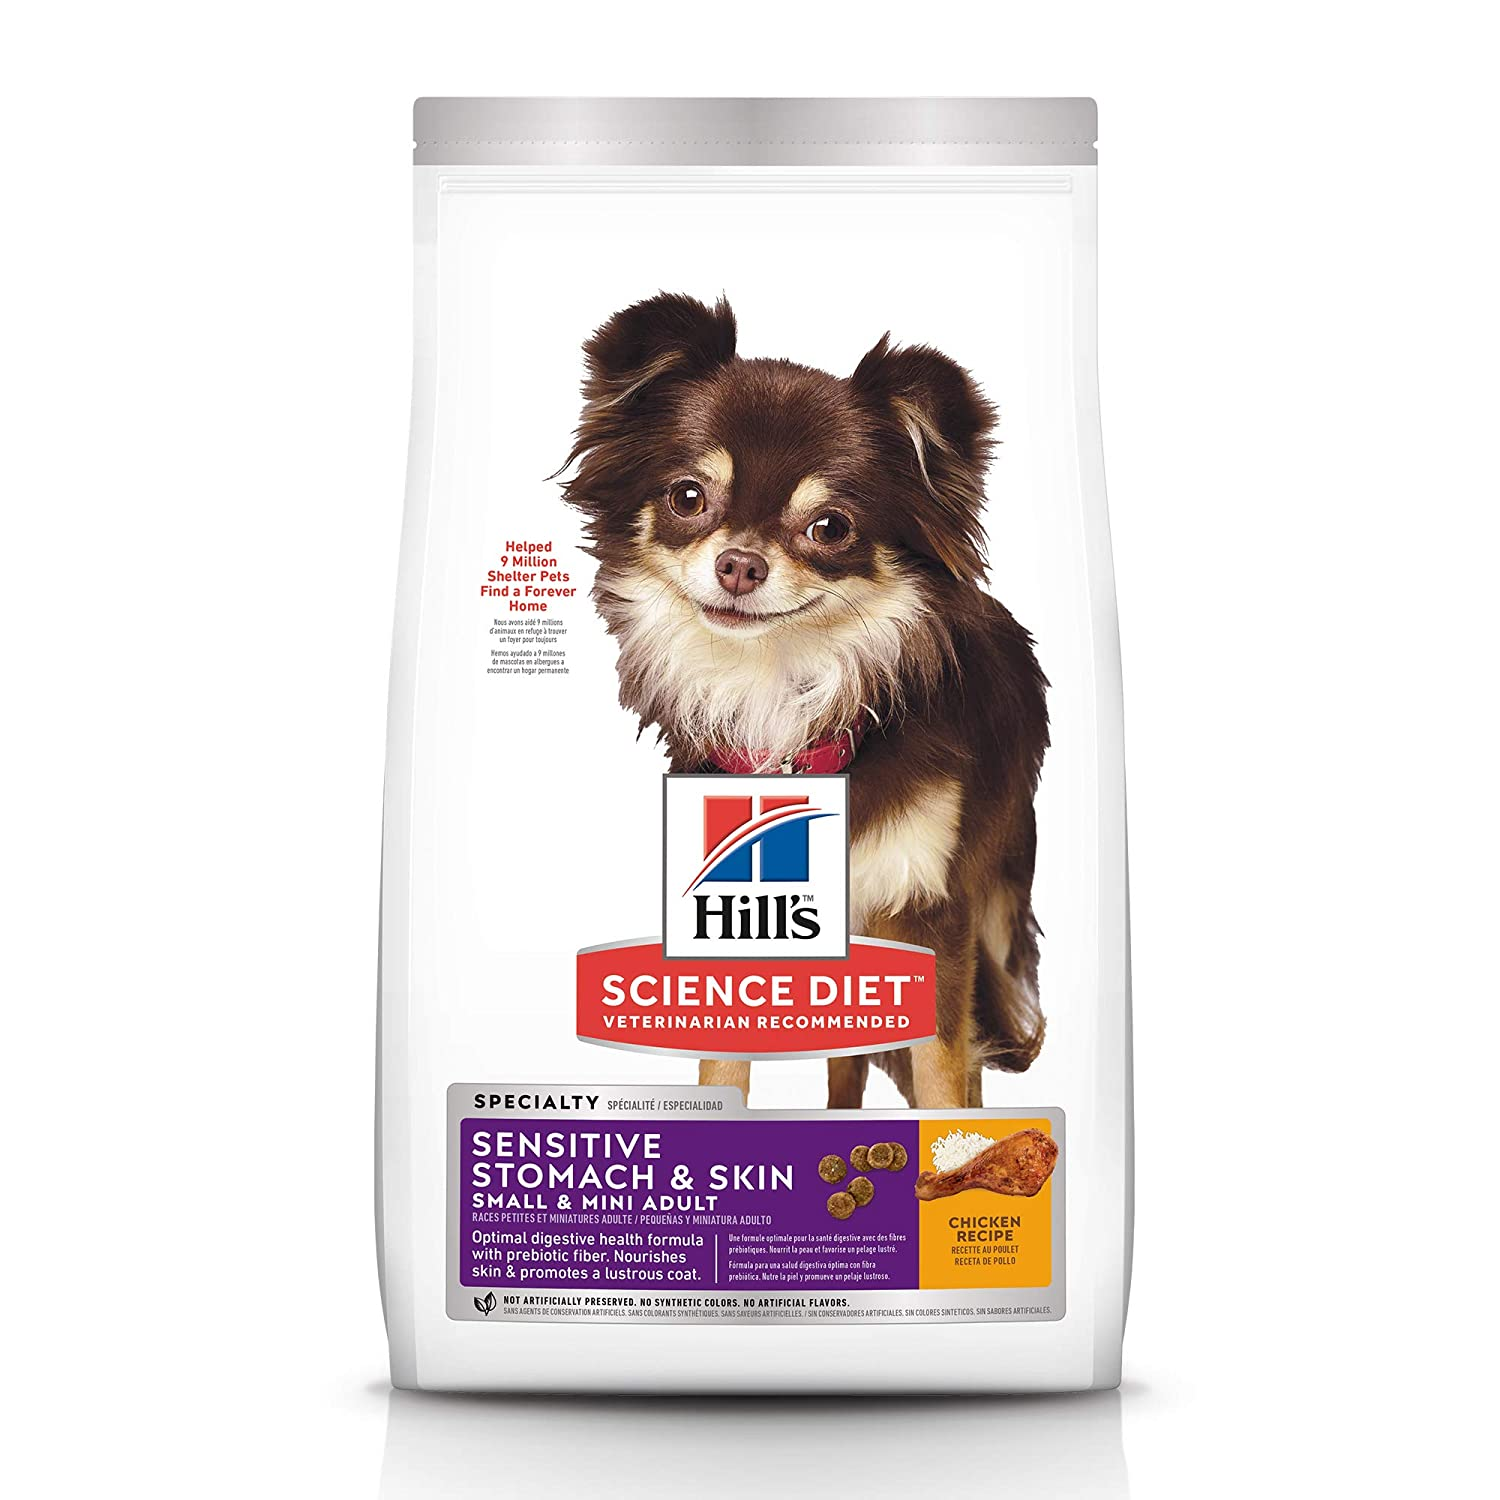 2.Hill's Science Diet Adult Sensitive Stomach & Skin Small Breed